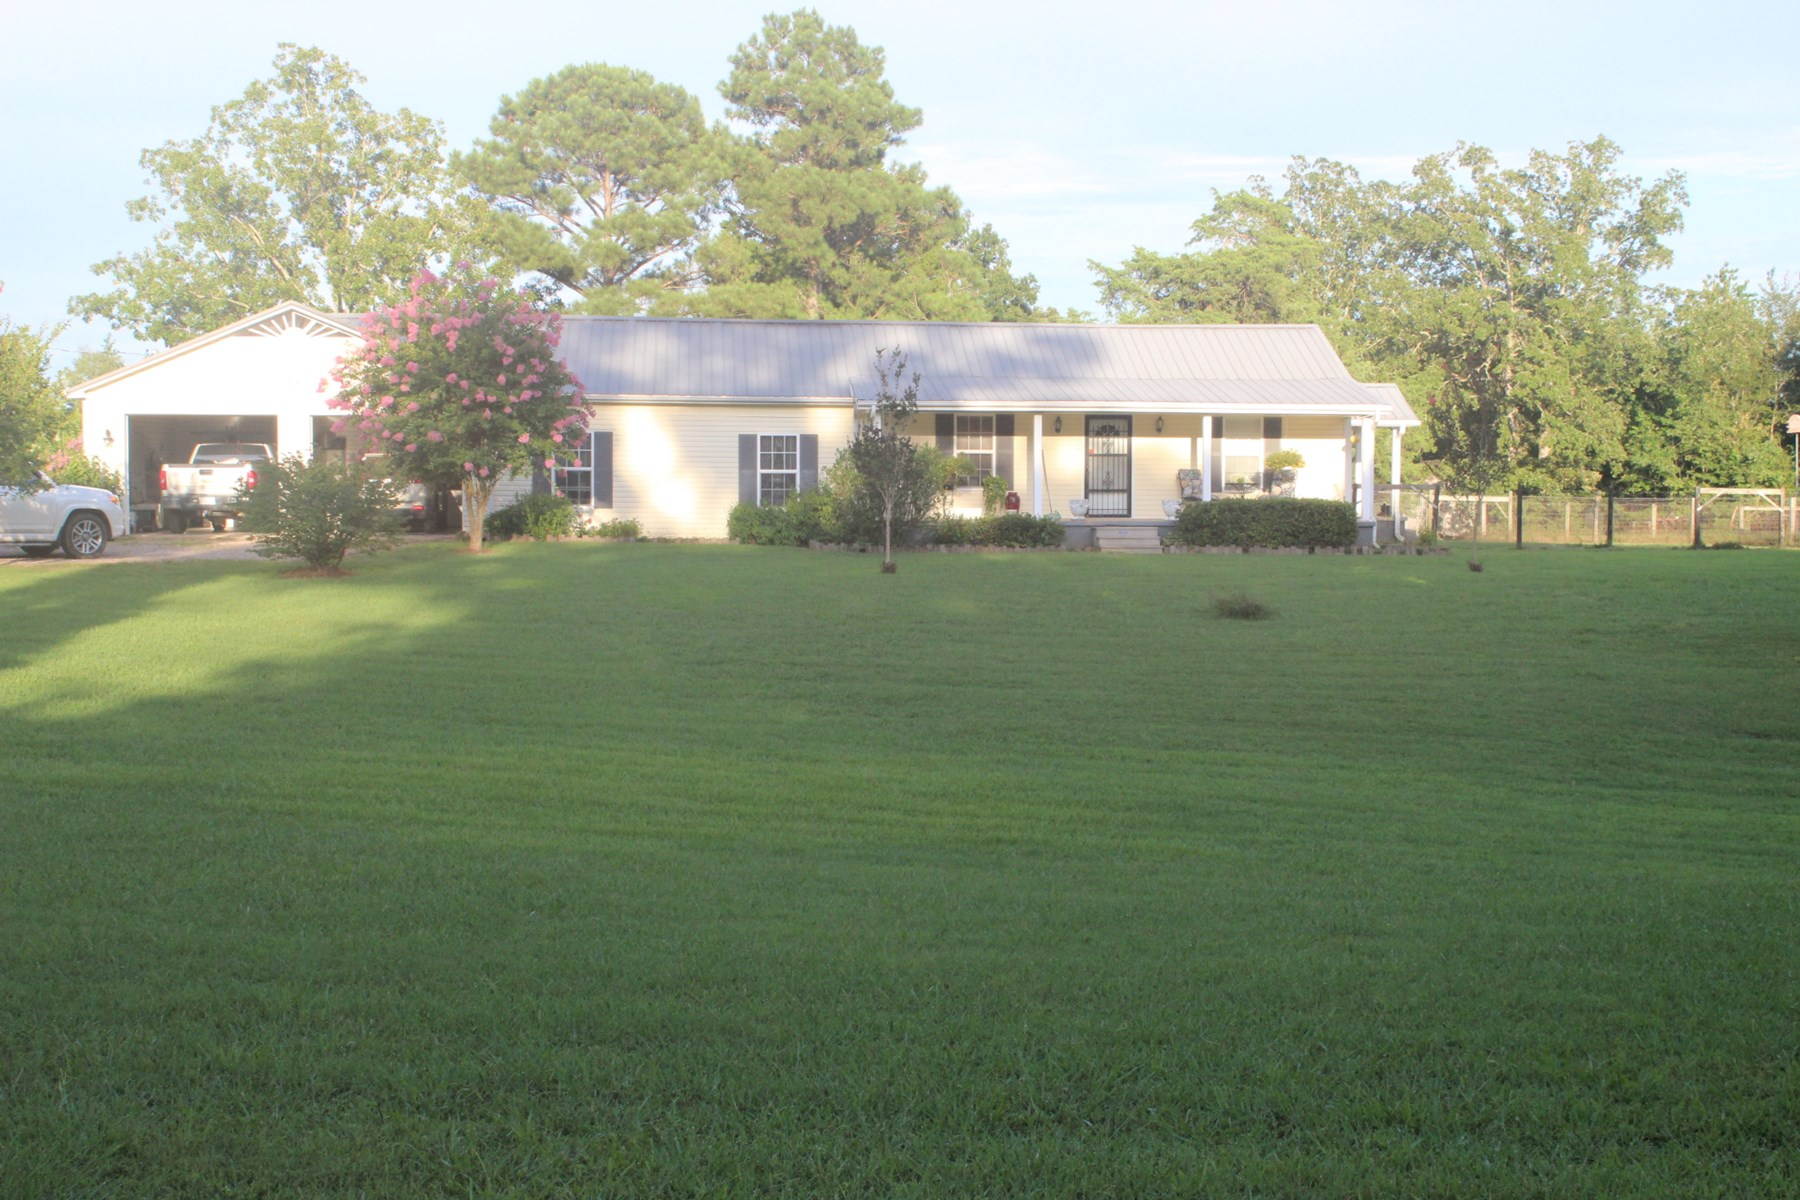 COUNTRY HOME FOR SALE IN HARDIN COUNTY, NEAR TN RIVER